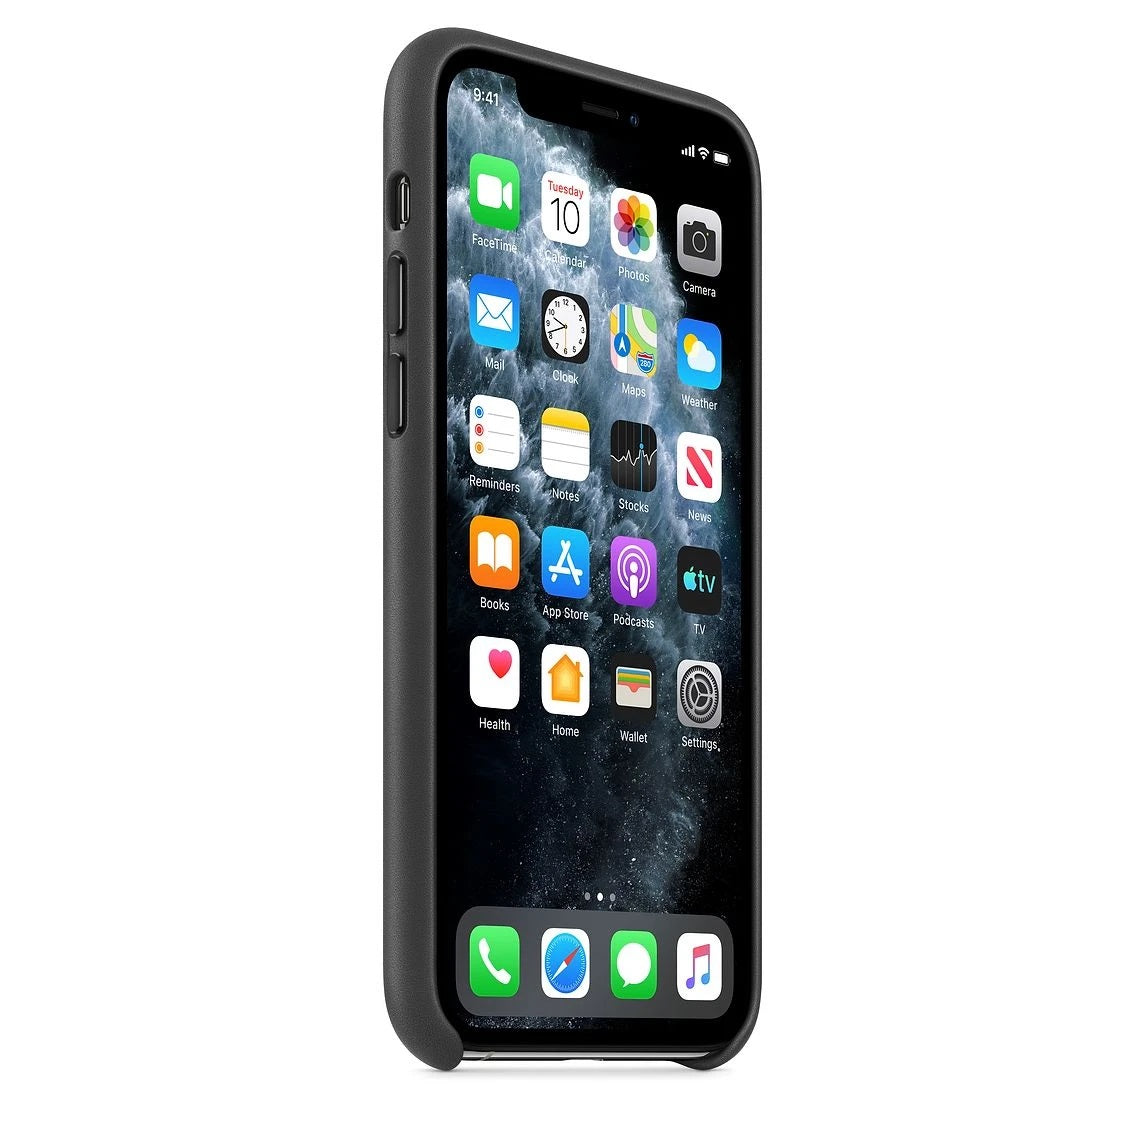 Silicon Case For iPhone 11 Pro Max - Black - Mobilegadgets360